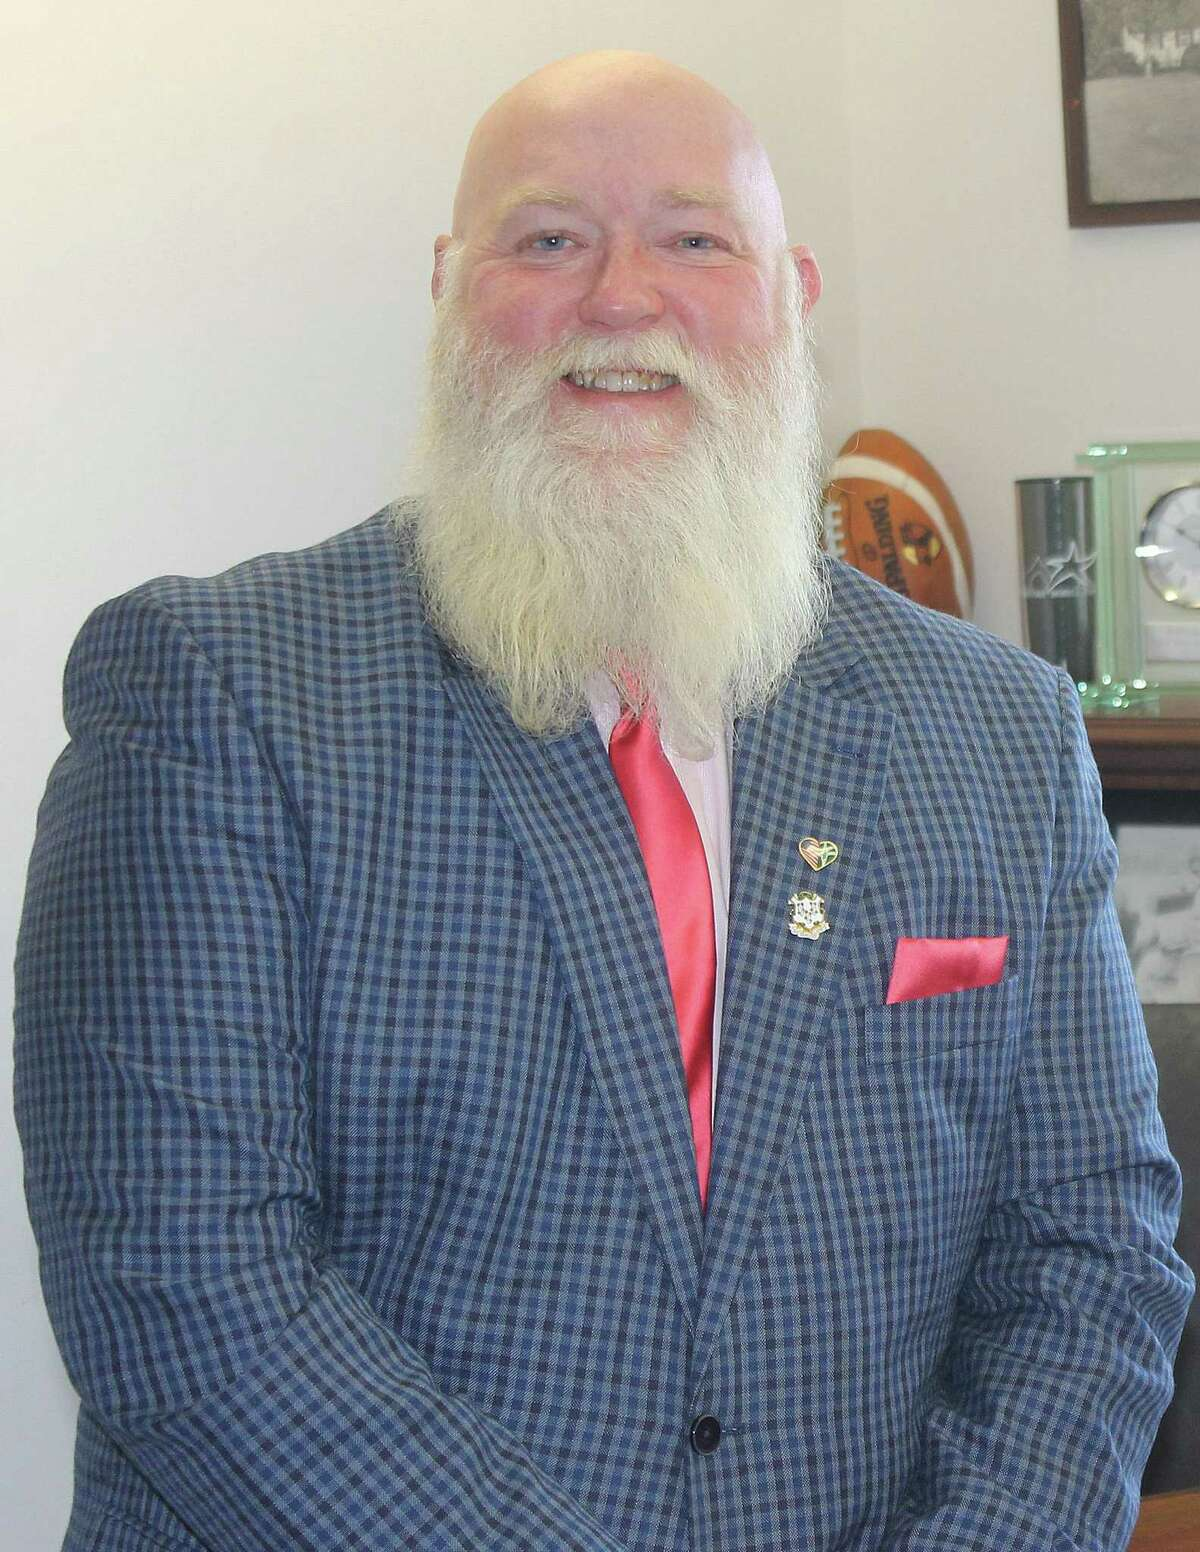 Bill Buckbee of New Milford, State Representative for the 67th District.